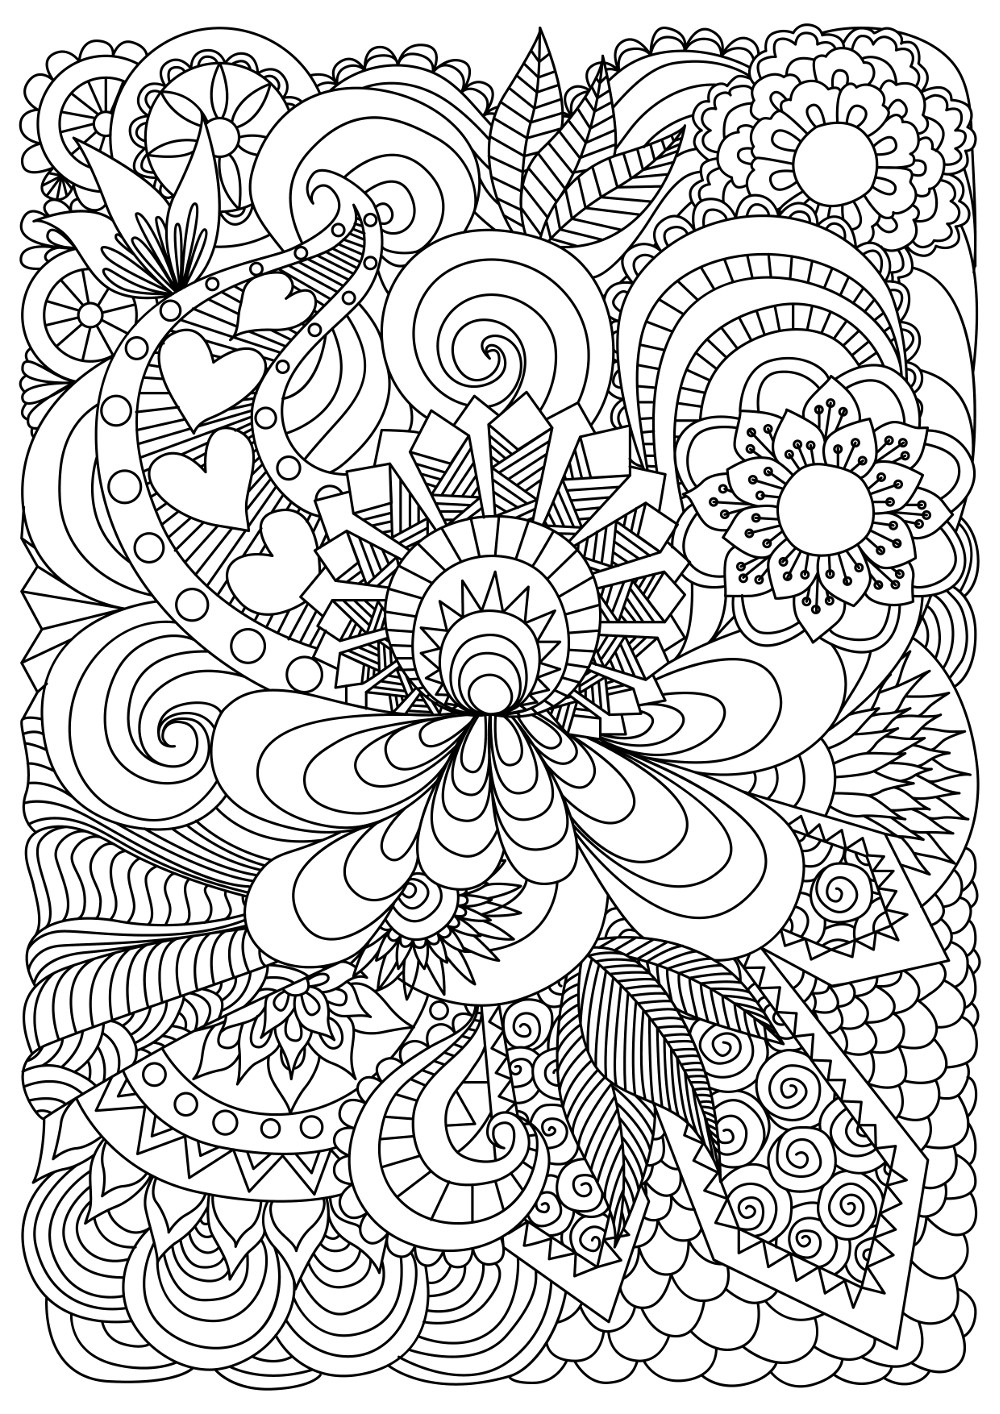 37 Best Adults Coloring Pages - Updated 2018 | free fun coloring pages for adults